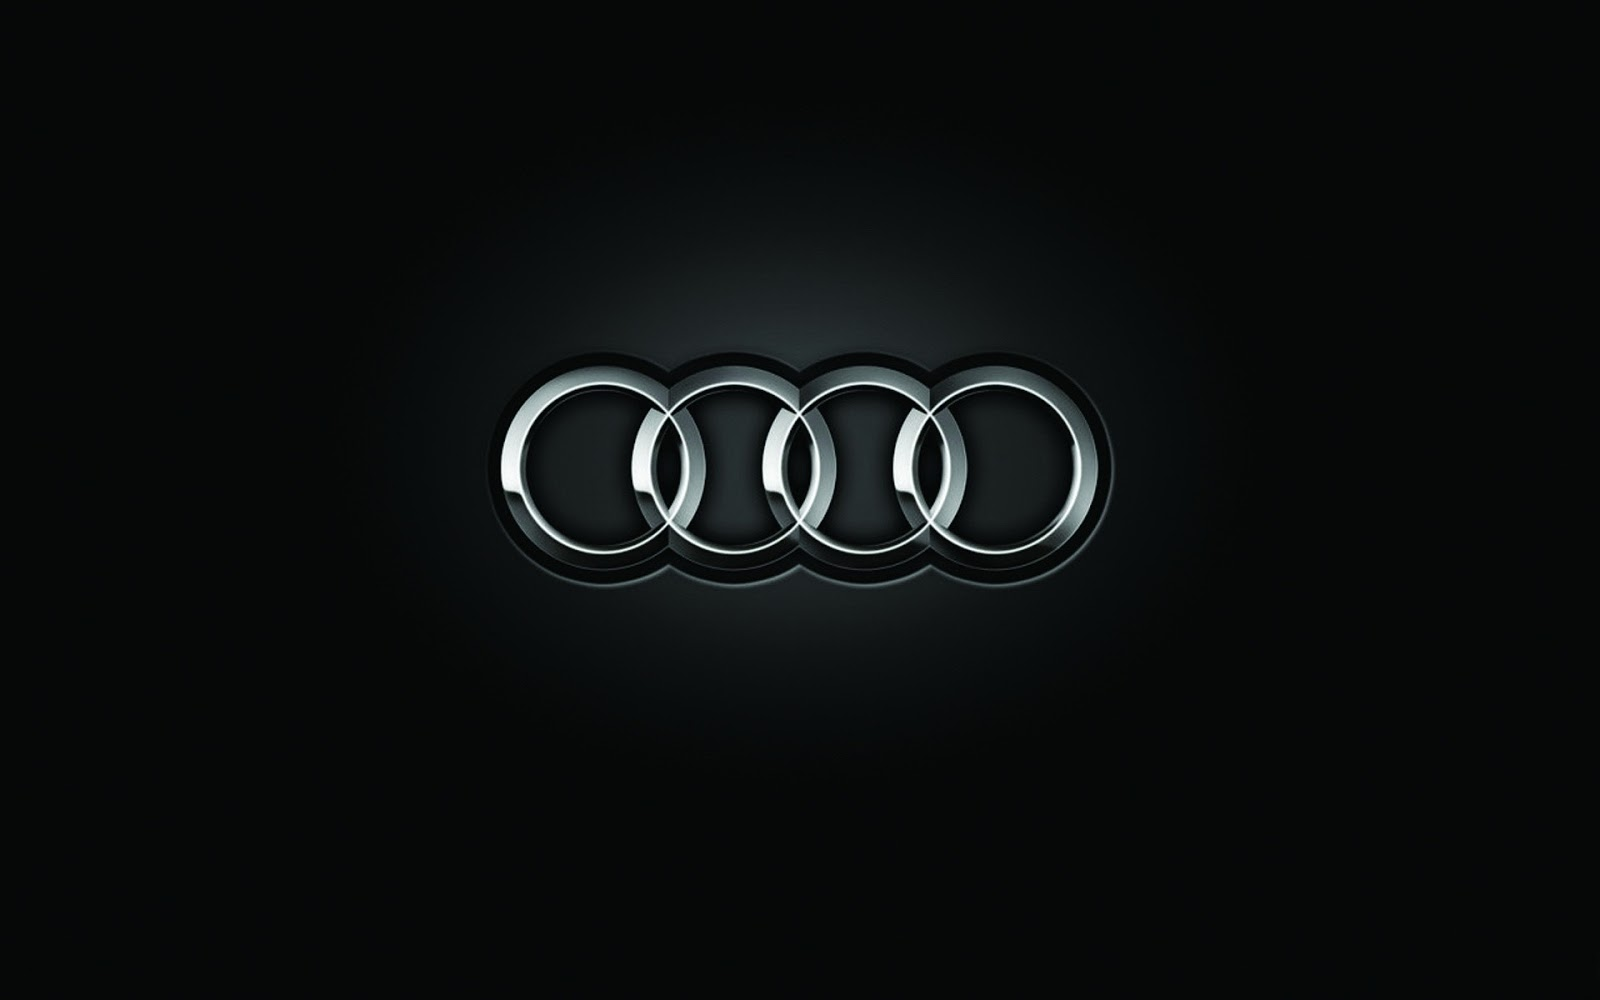 Audi Logo, Audi Car Symbol Meaning and History | Car Brand